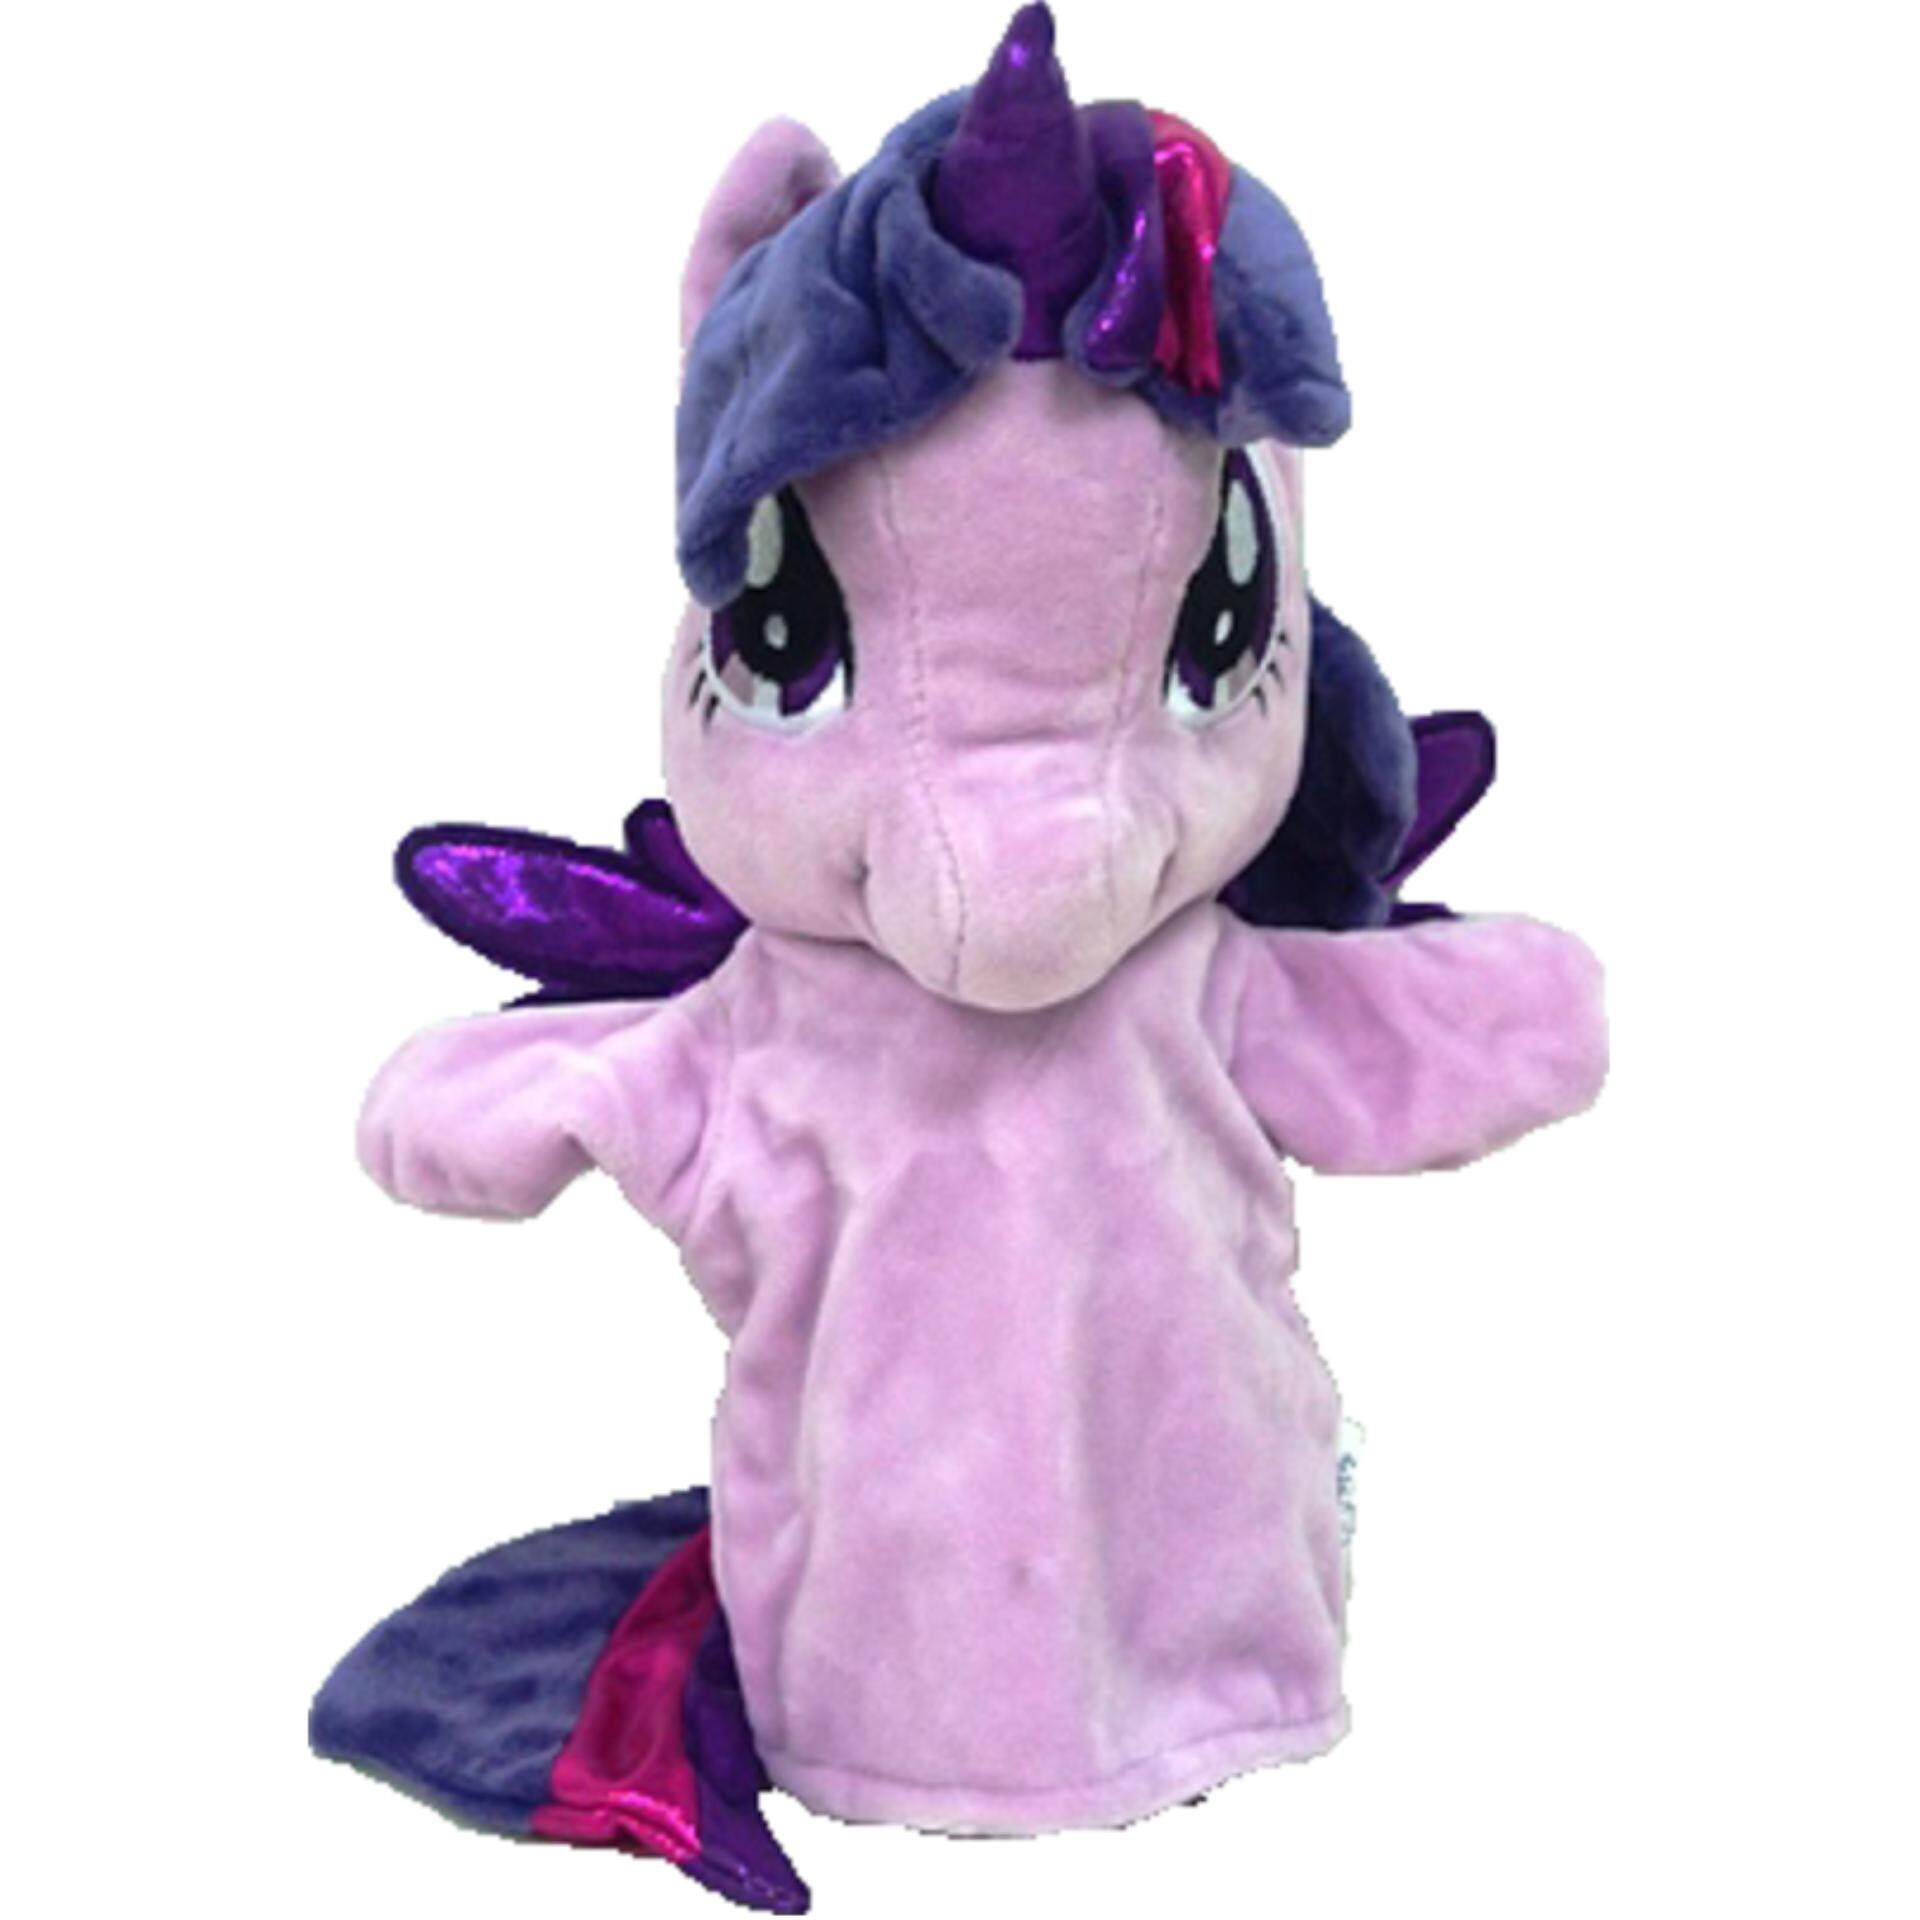 My Little Pony Hand Puppet Toy - Twilight Sparkle toys for girls